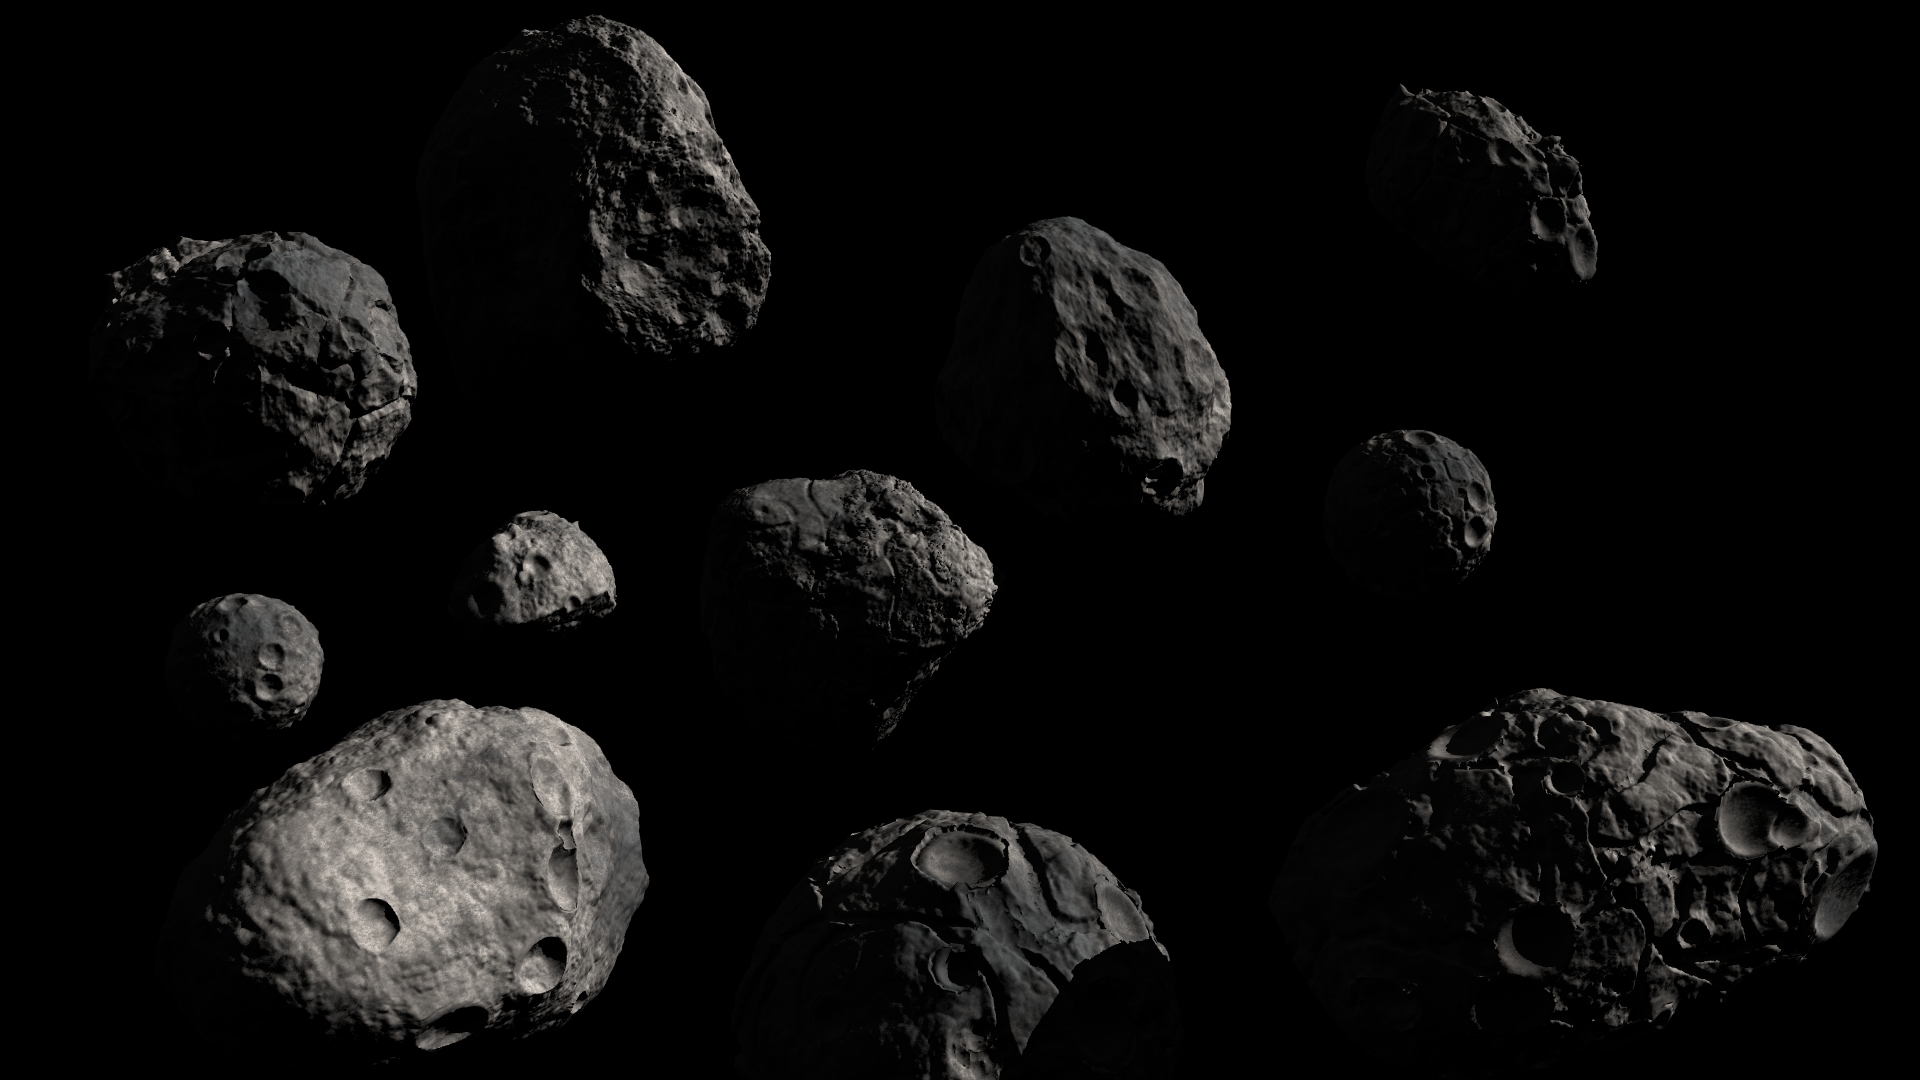 Minerals that are founded in the asteroid include gold,nickel,manganese,cobalt and platnium ...